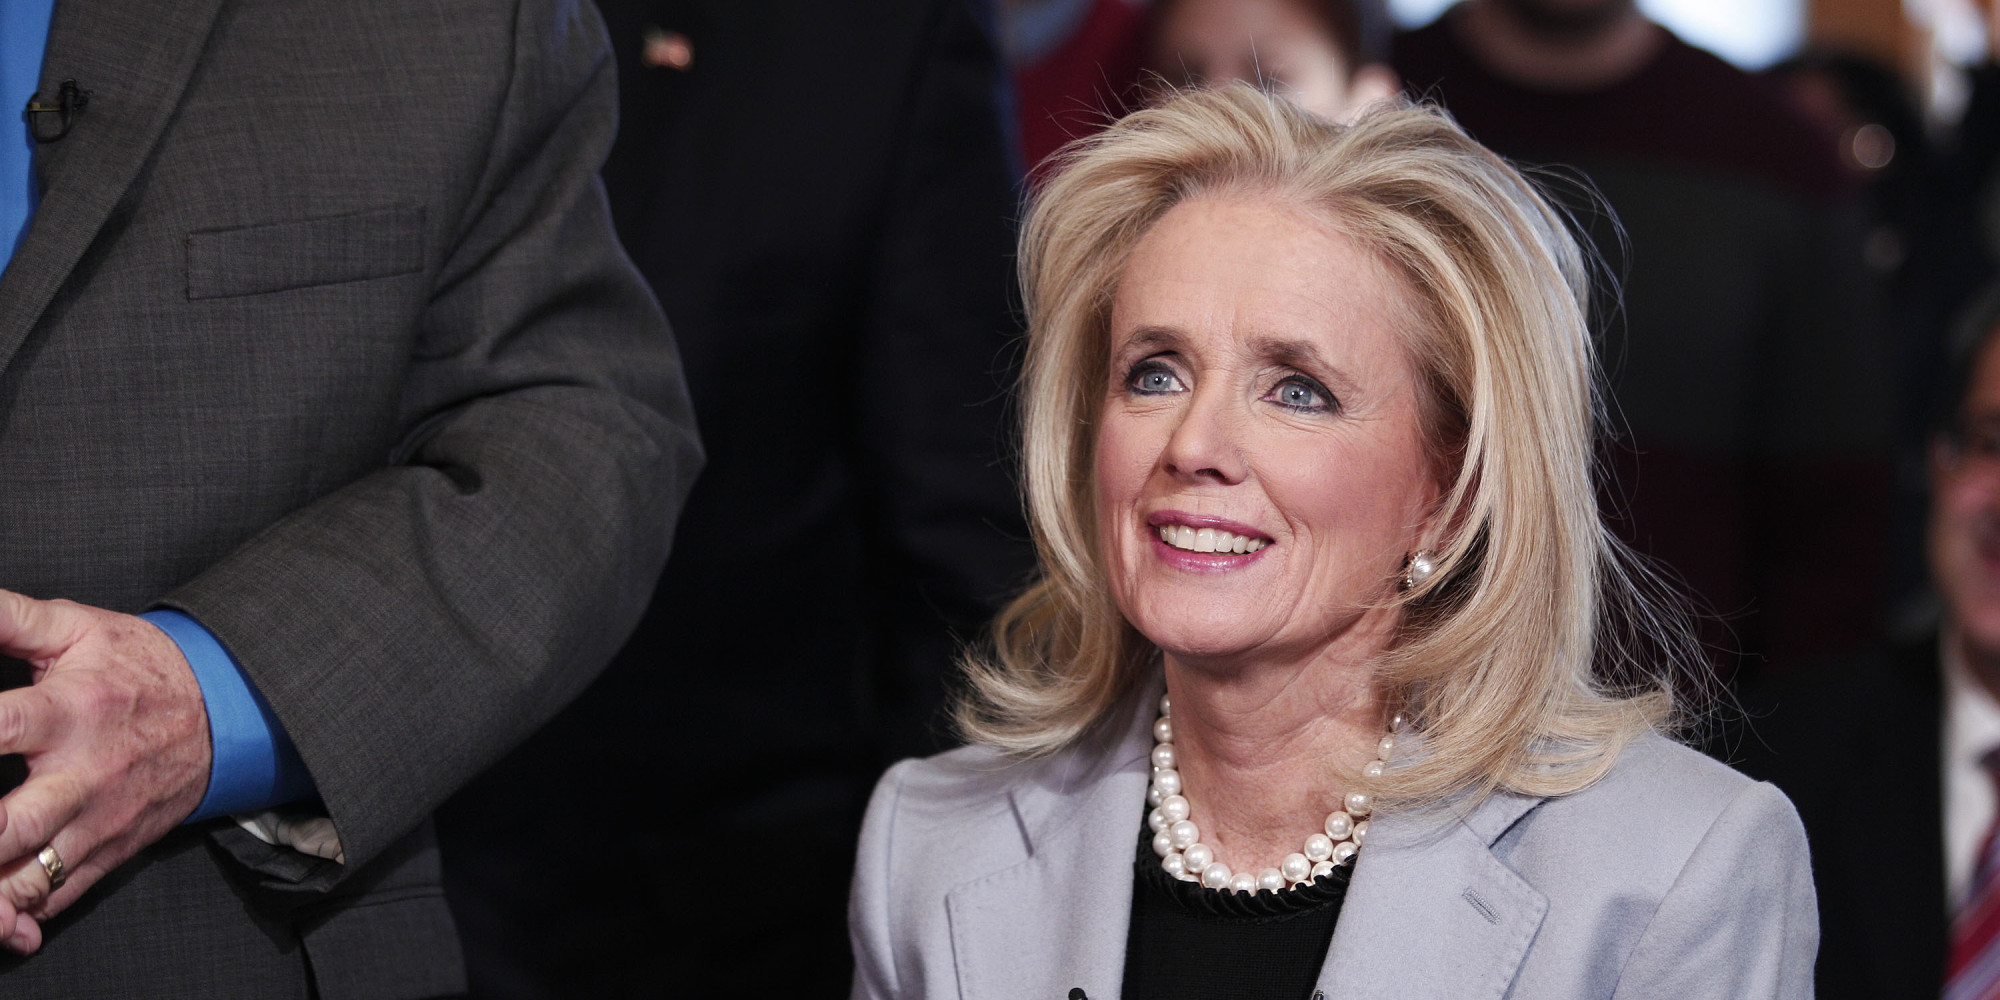 Image result for photo of rep debbie dingell and robert siegel